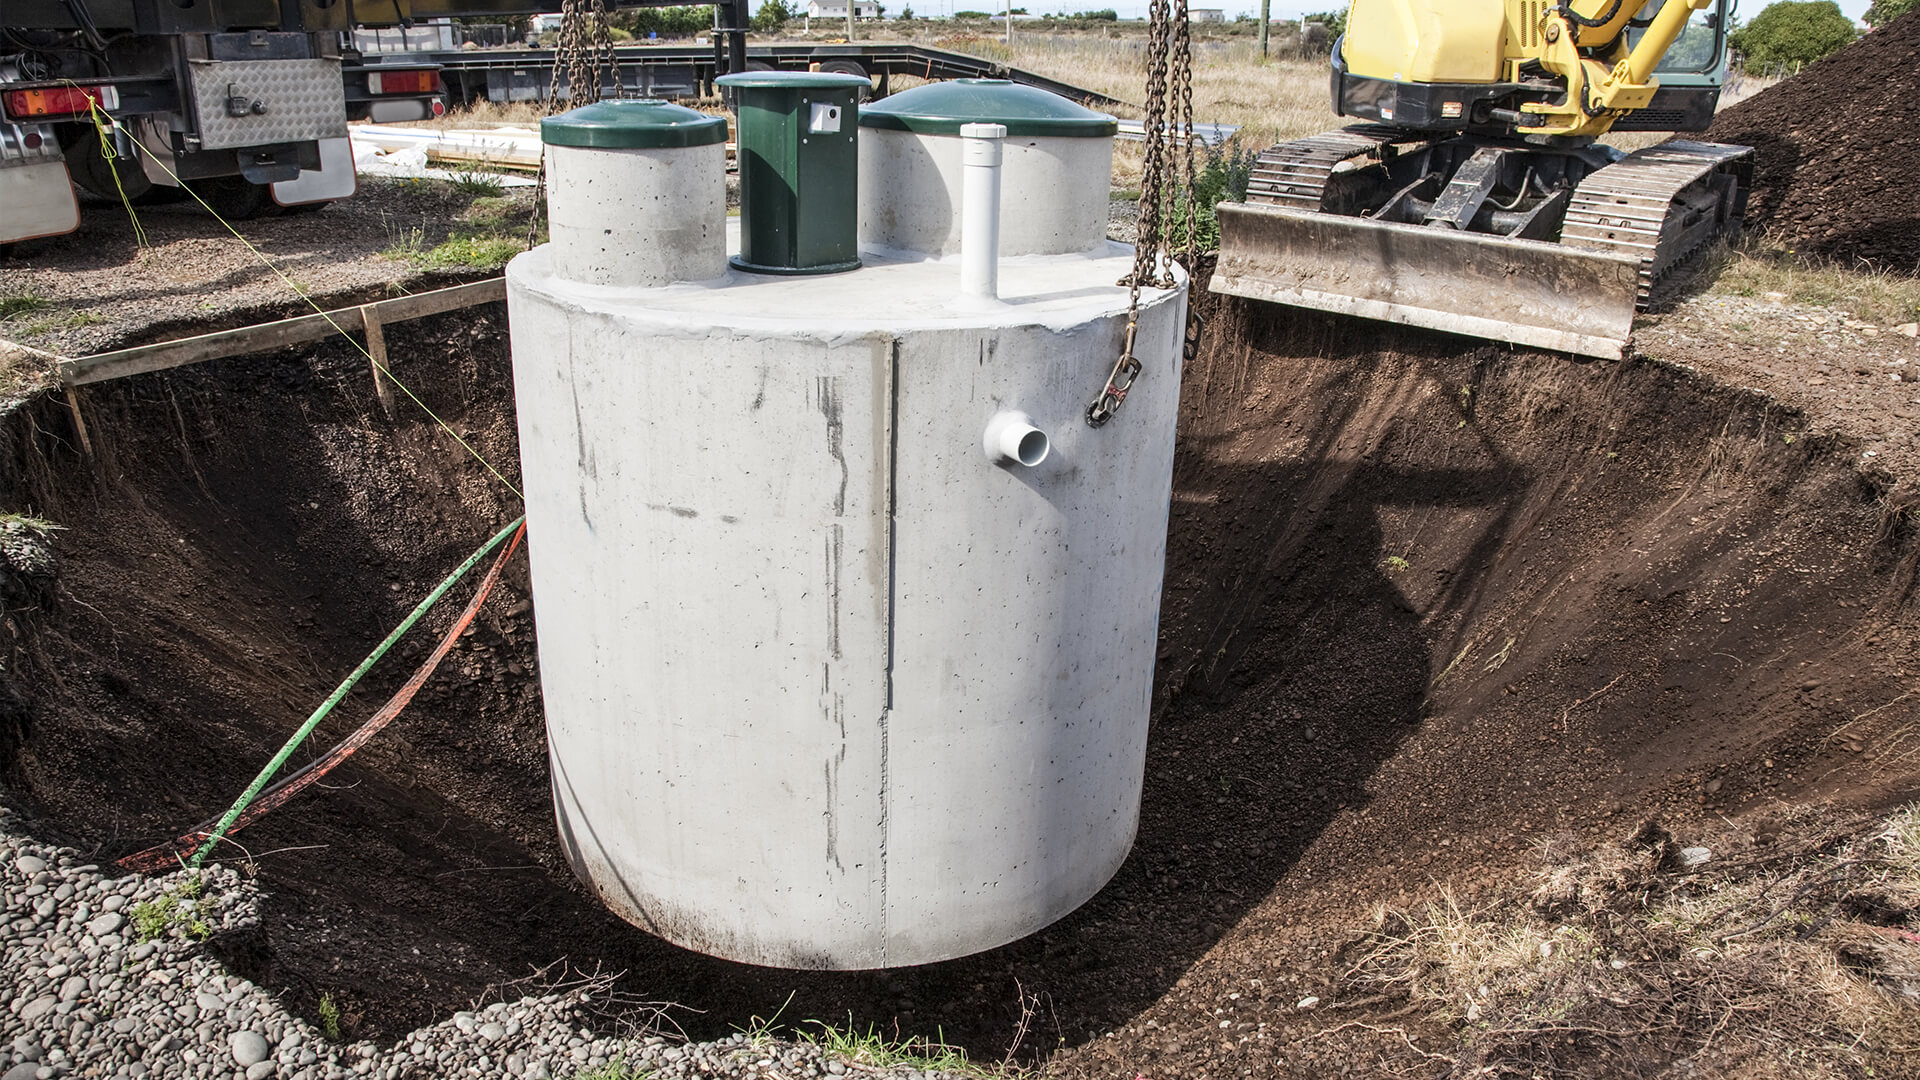 Residential septic tank on a homes property